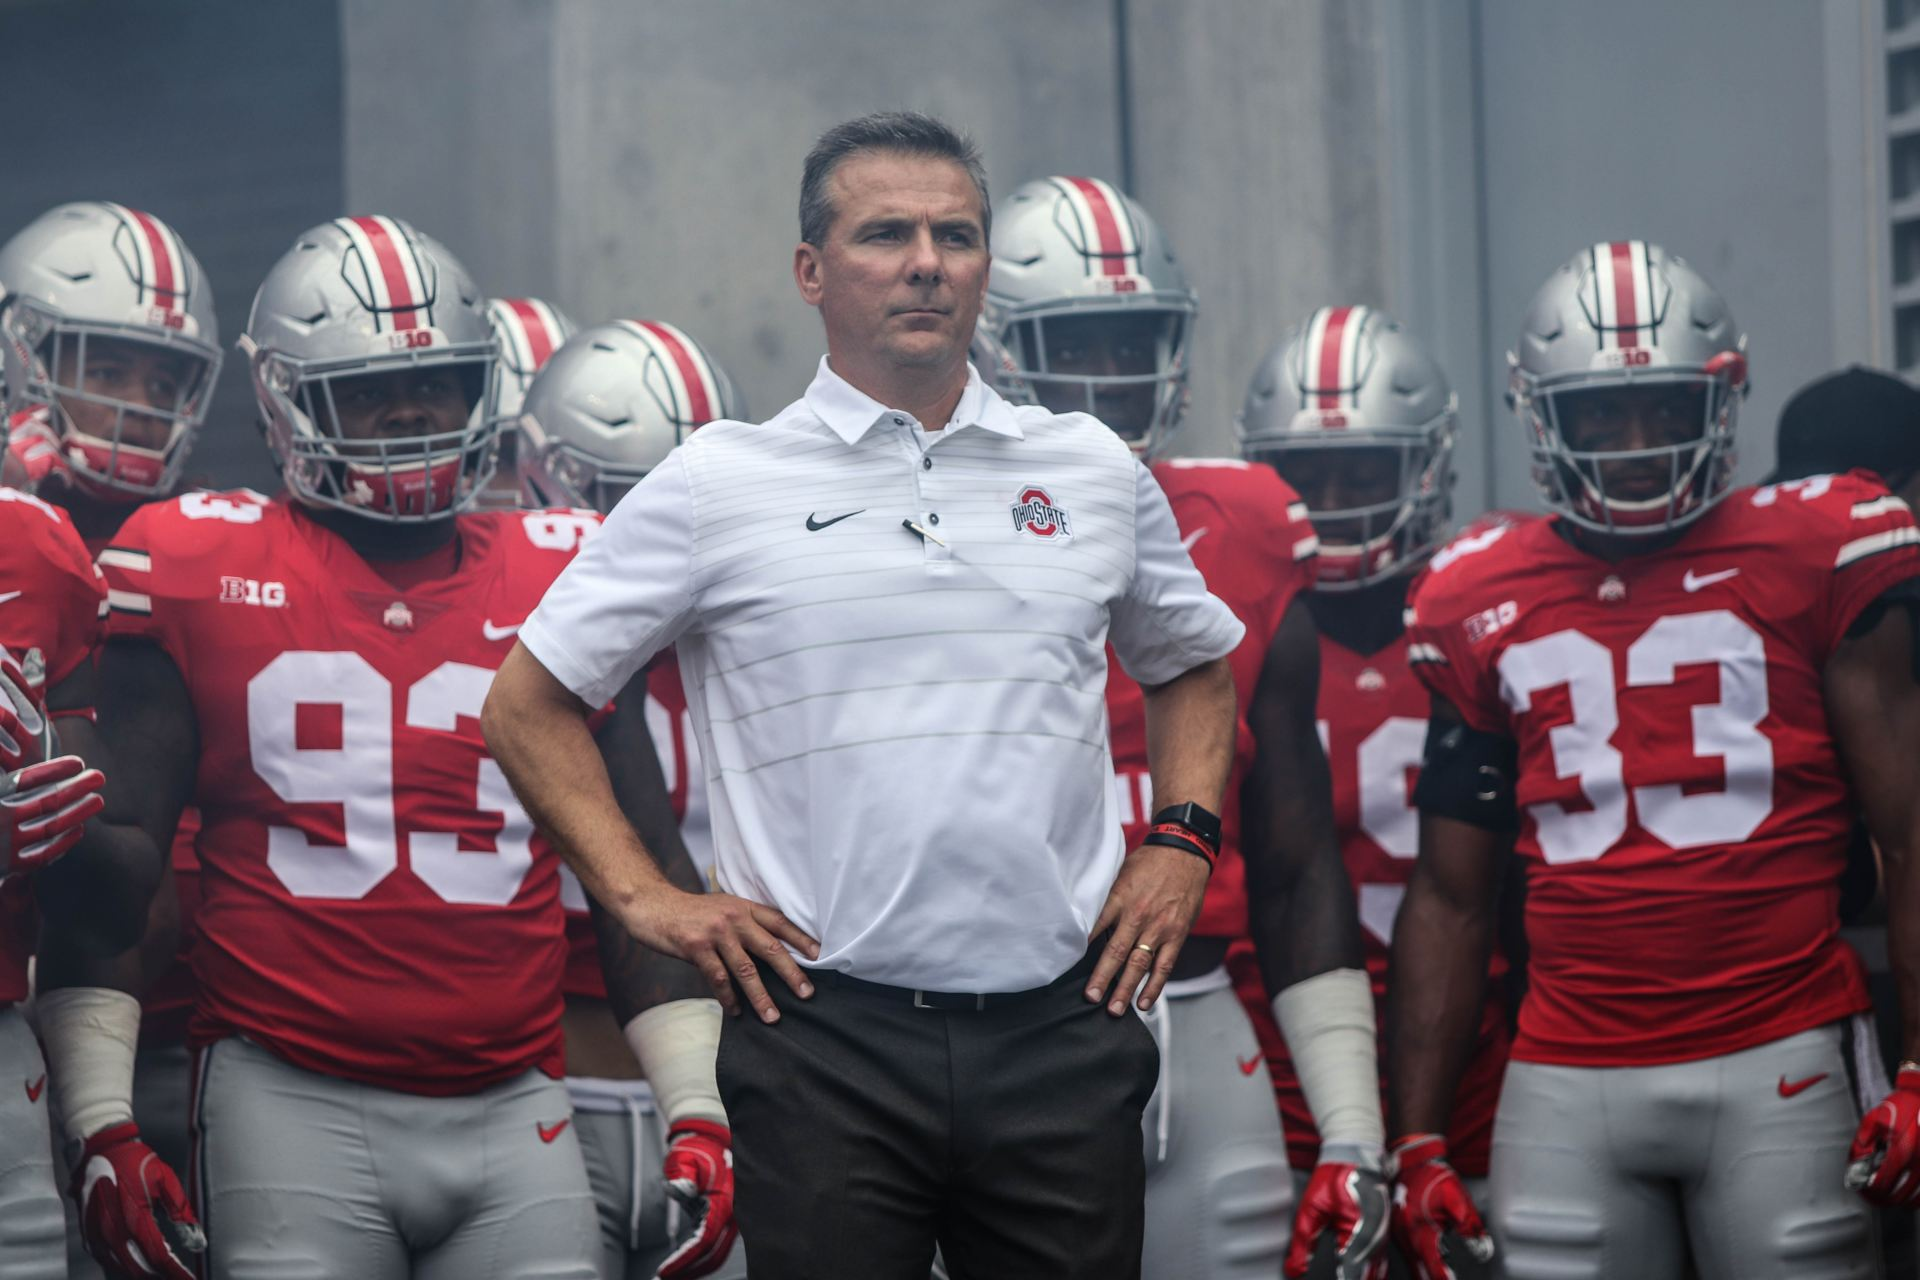 Football: Ohio State - UNLV game preview